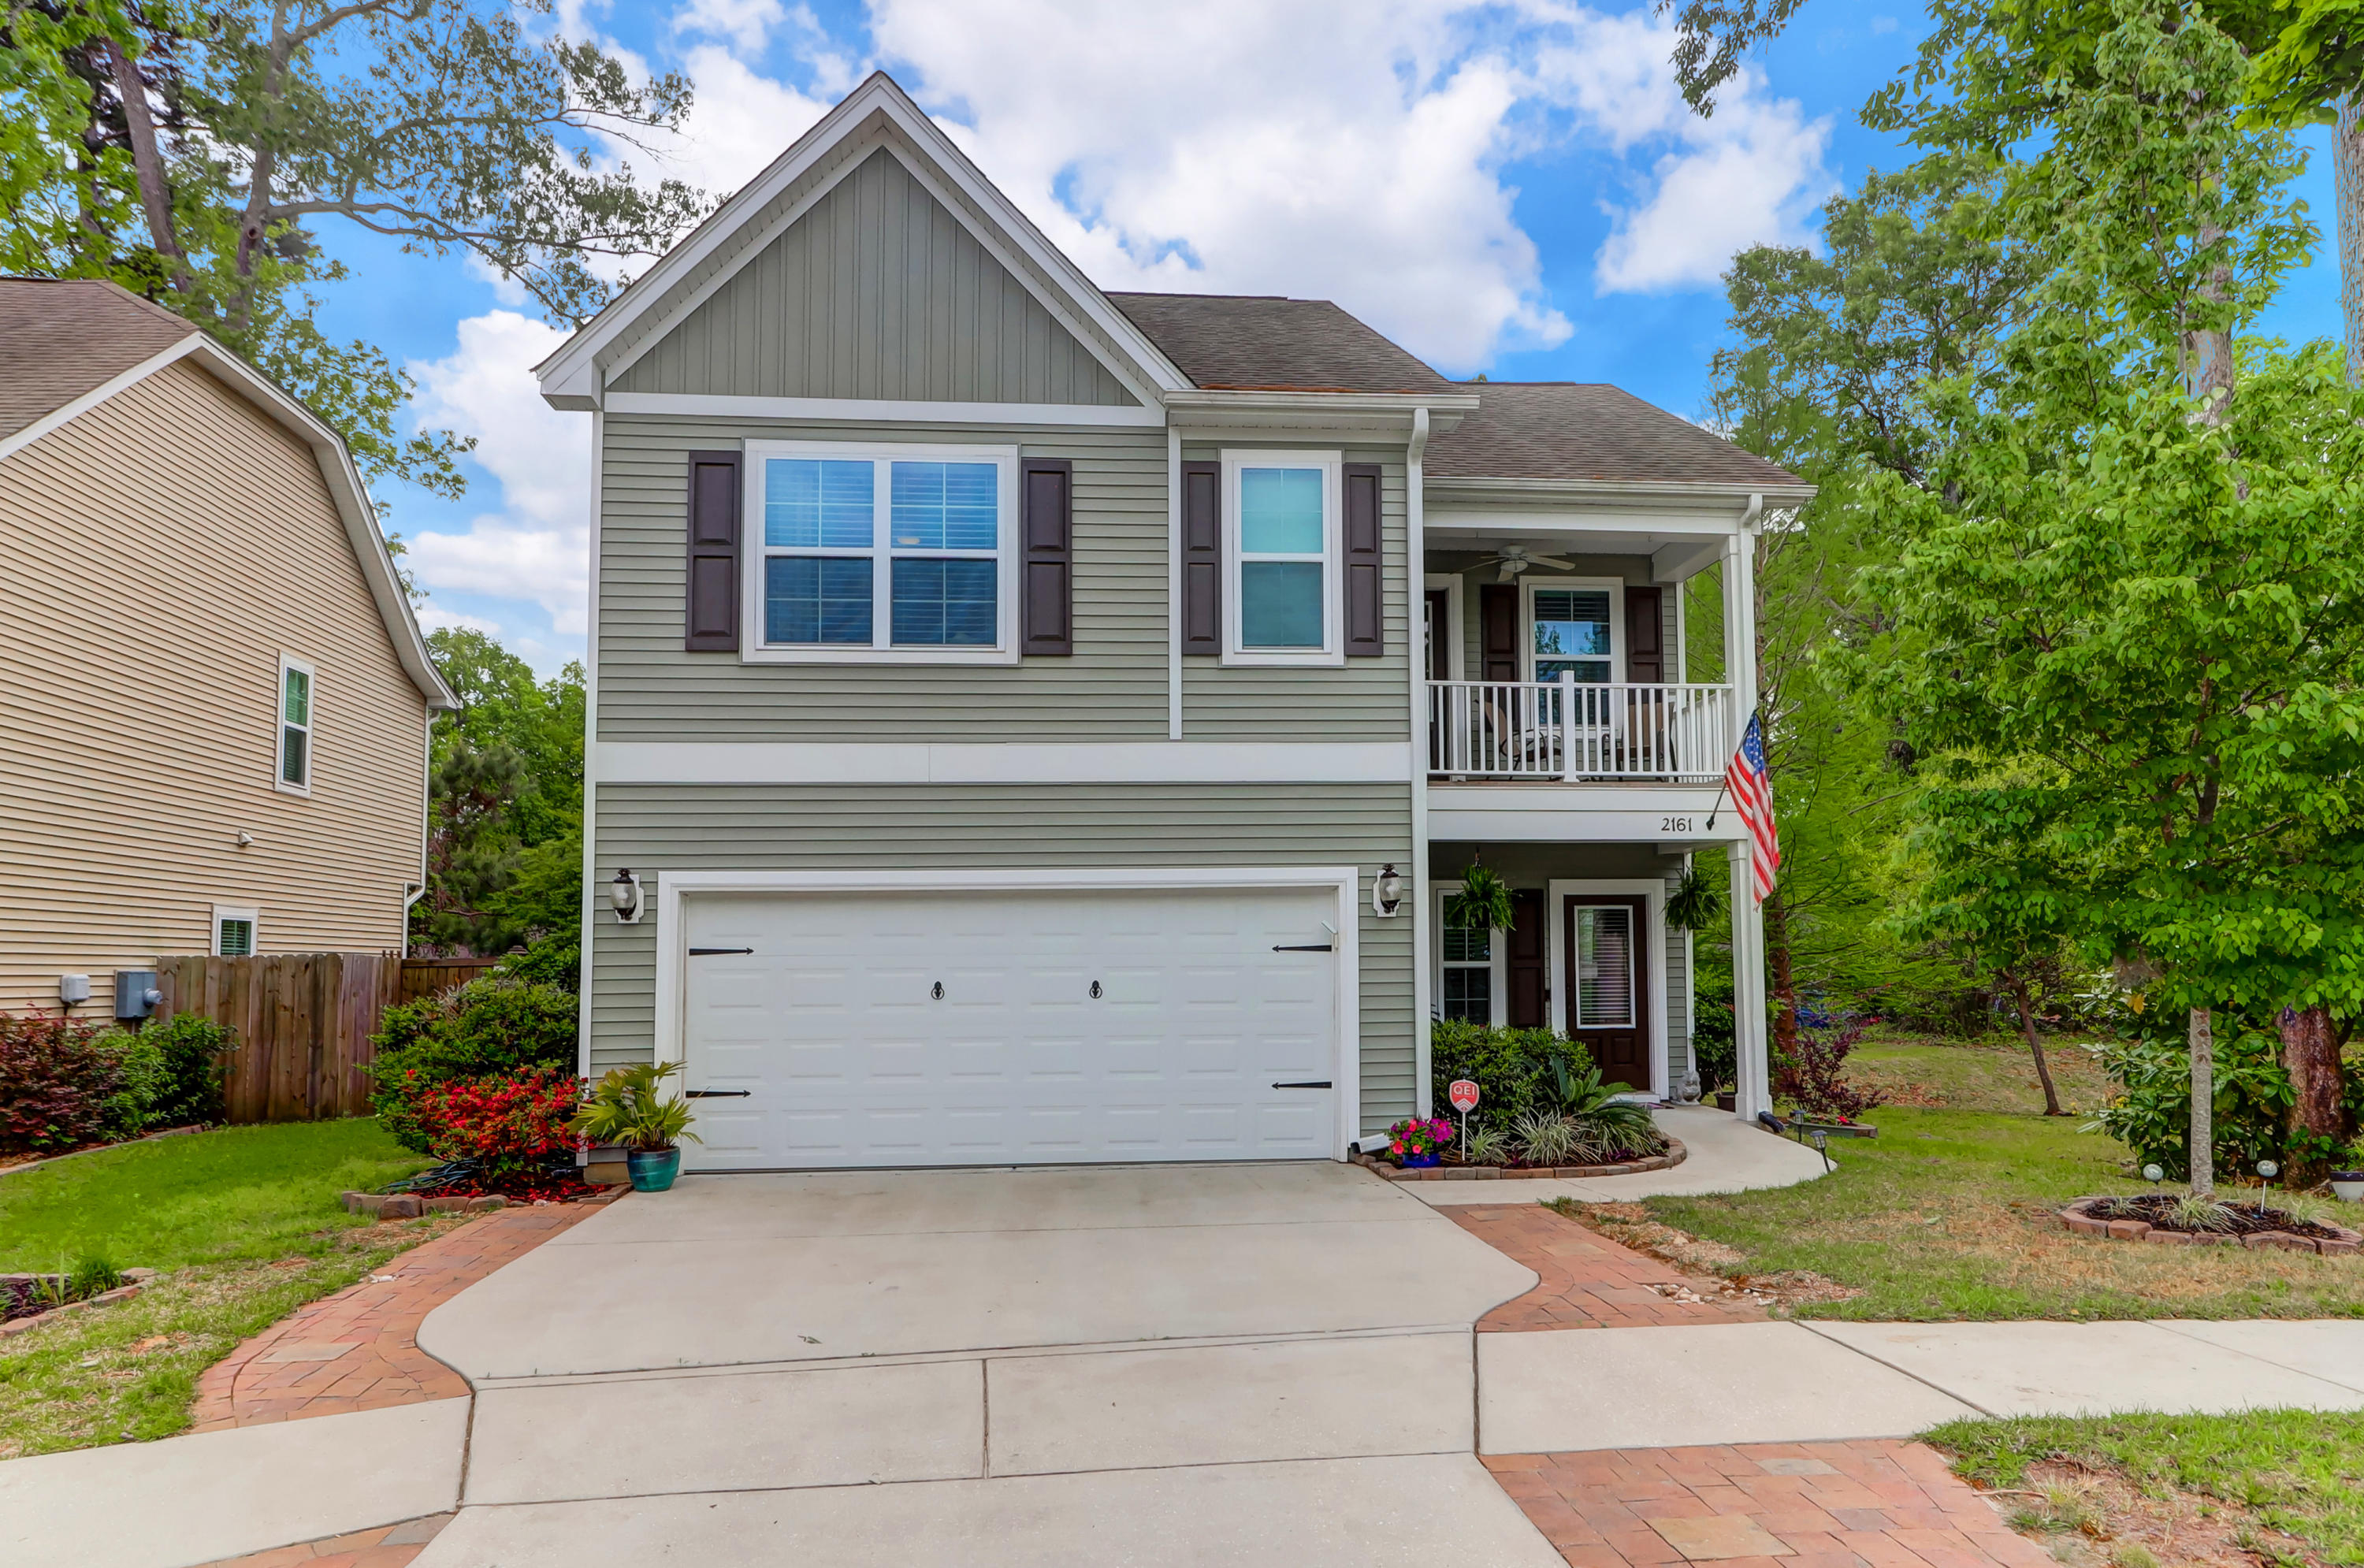 2161 Ashley Cooper Lane Charleston, SC 29414